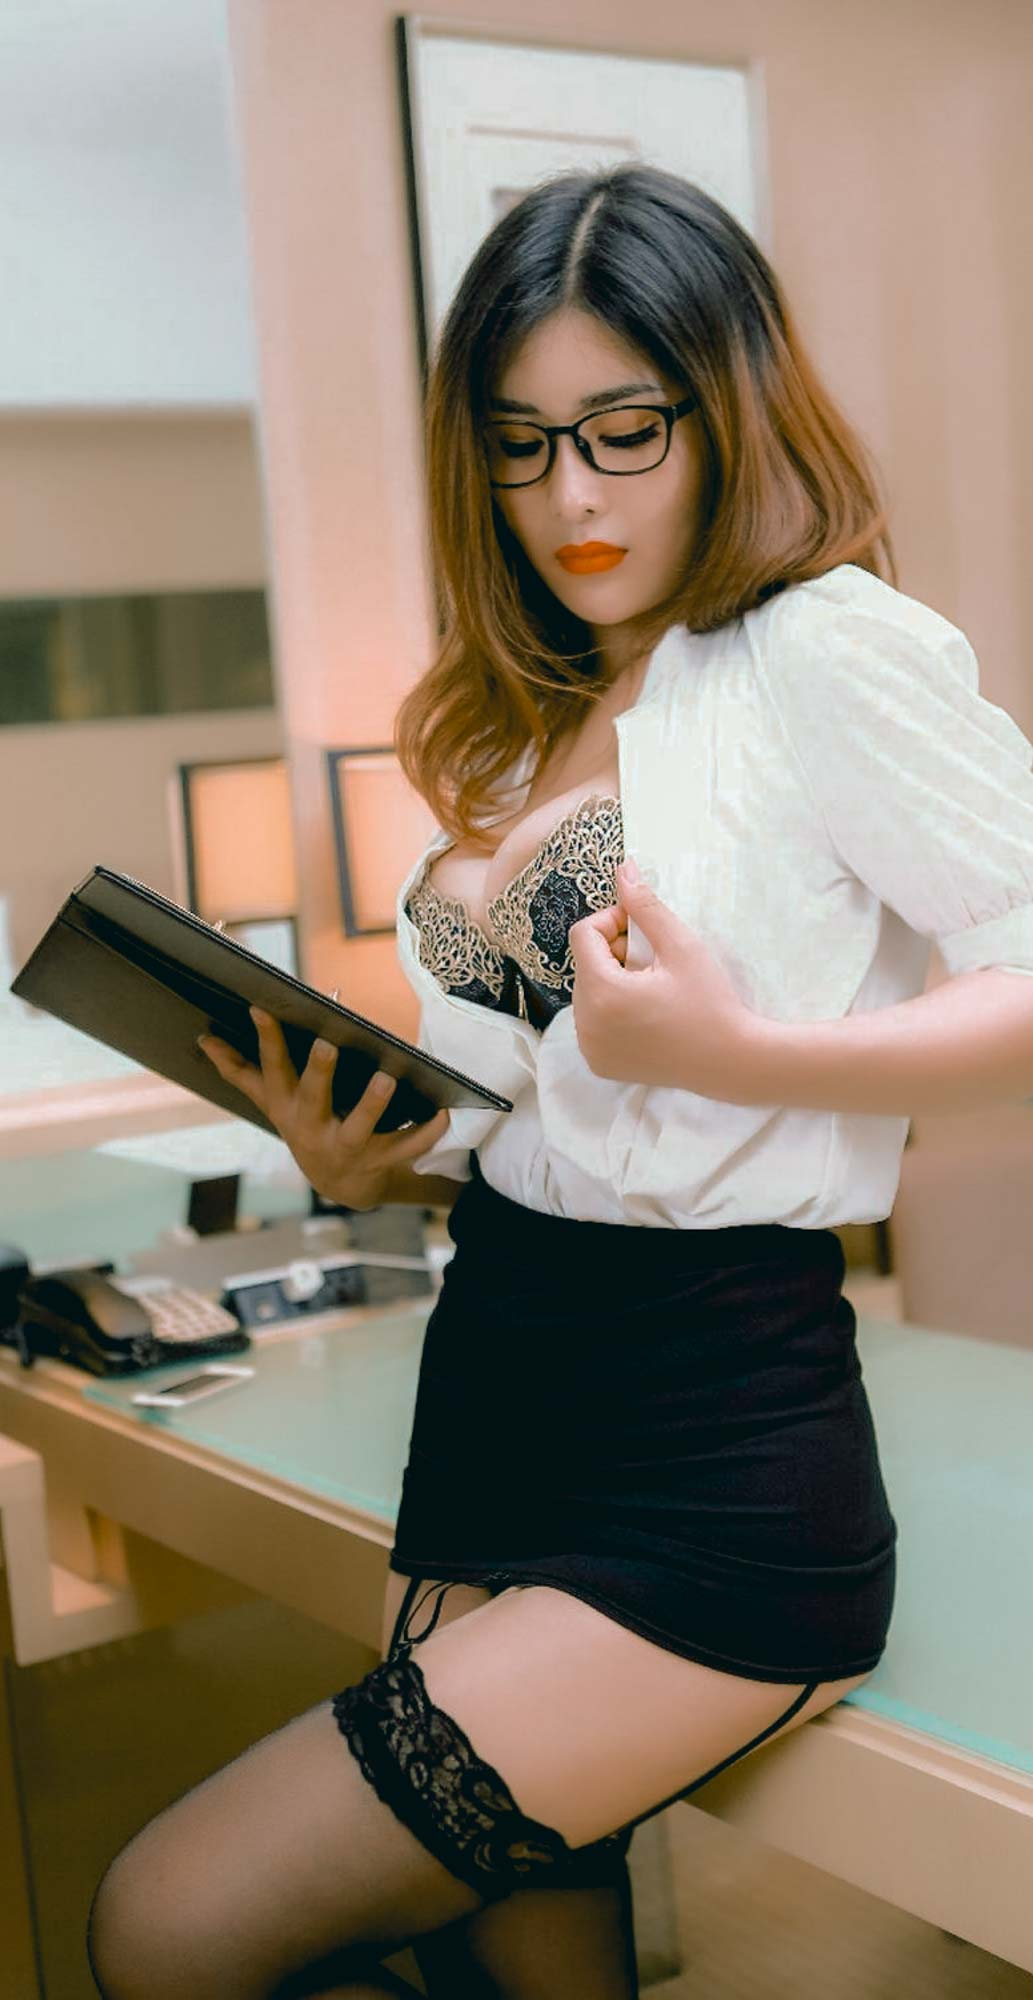 Yan Panpan 闫盼盼 | Nymph Voluptuous Secretary | Page 7 of 8 ...